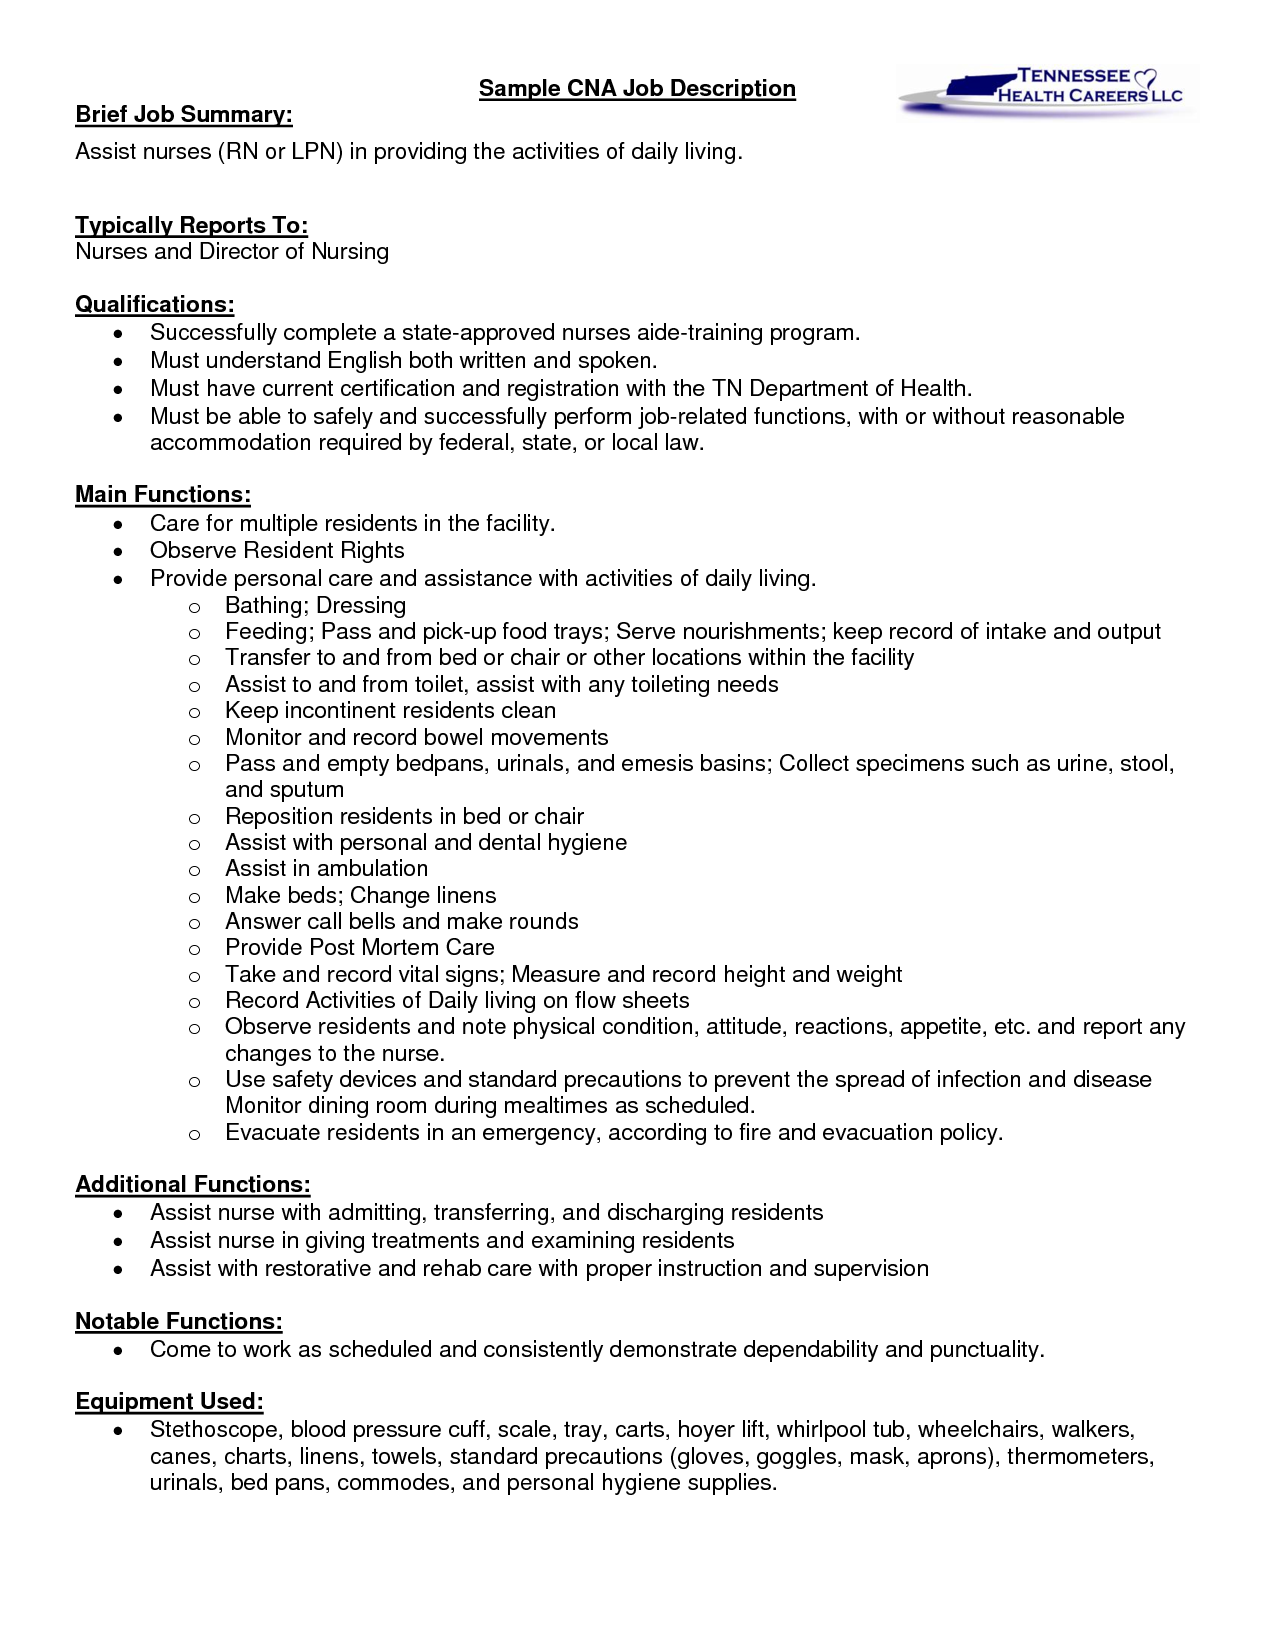 resume for a cna position - Google Search | cna | Pinterest